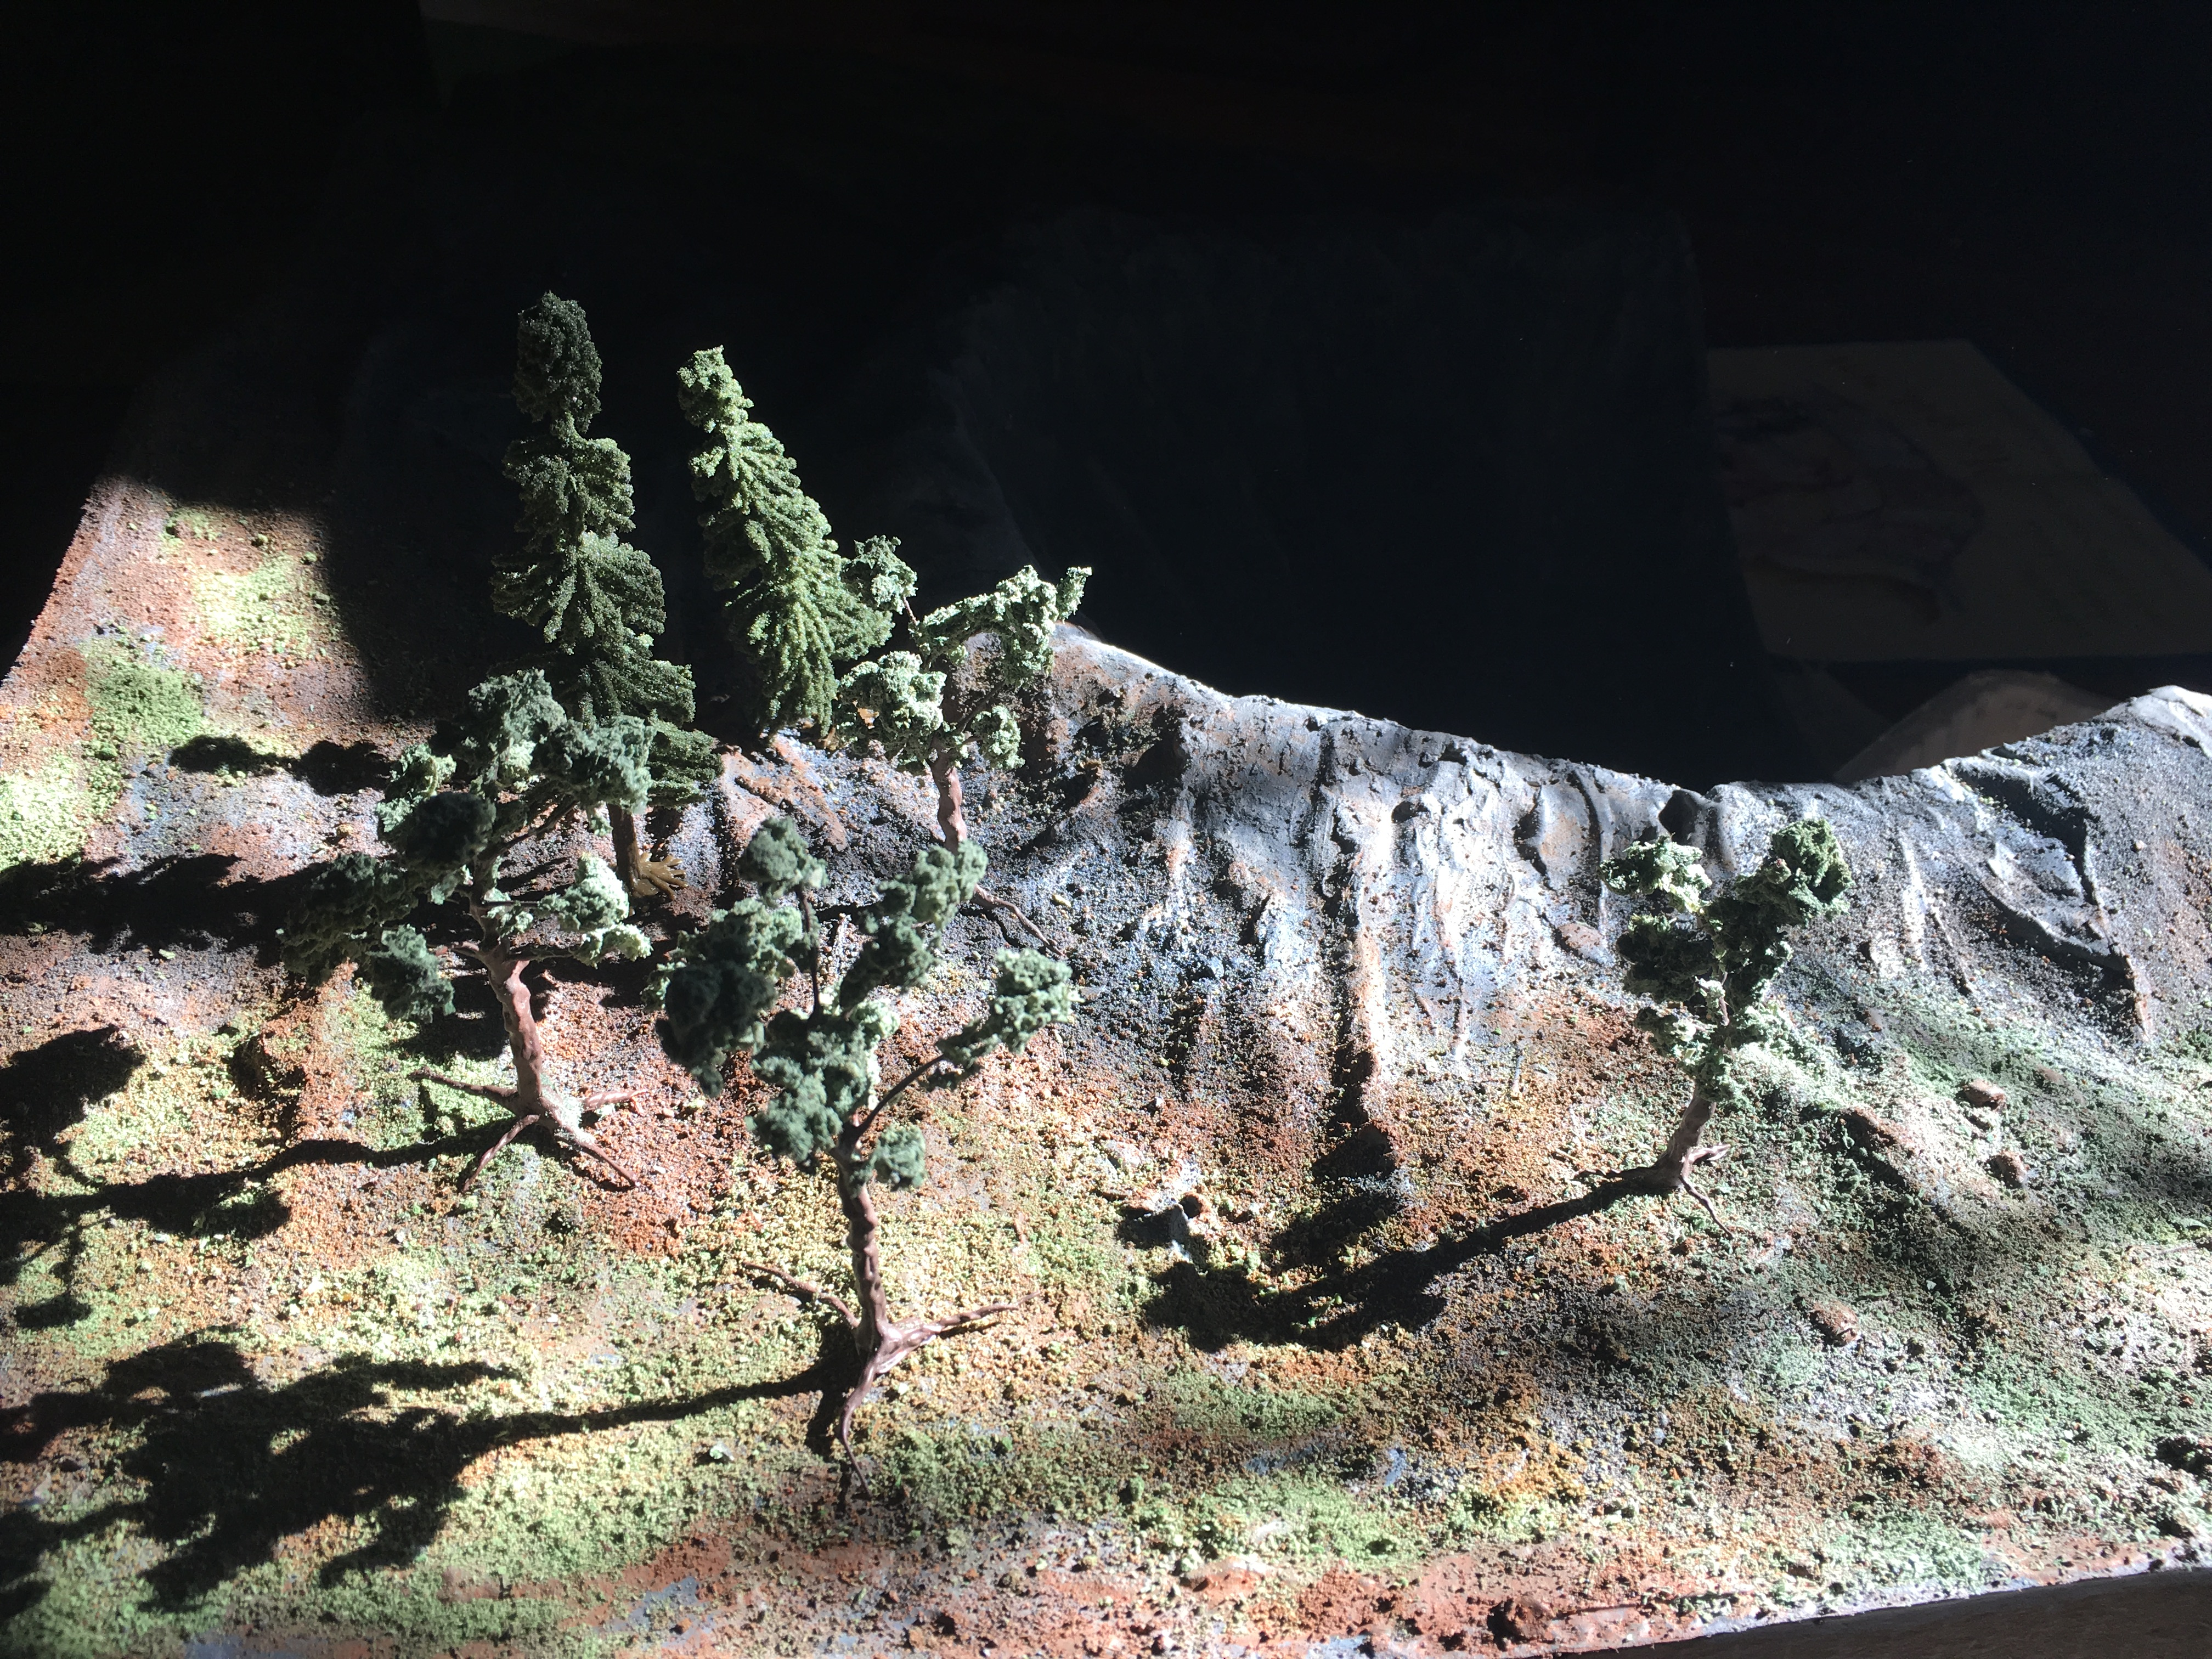 How to make a cool dinosaur extinction diorama for (almost